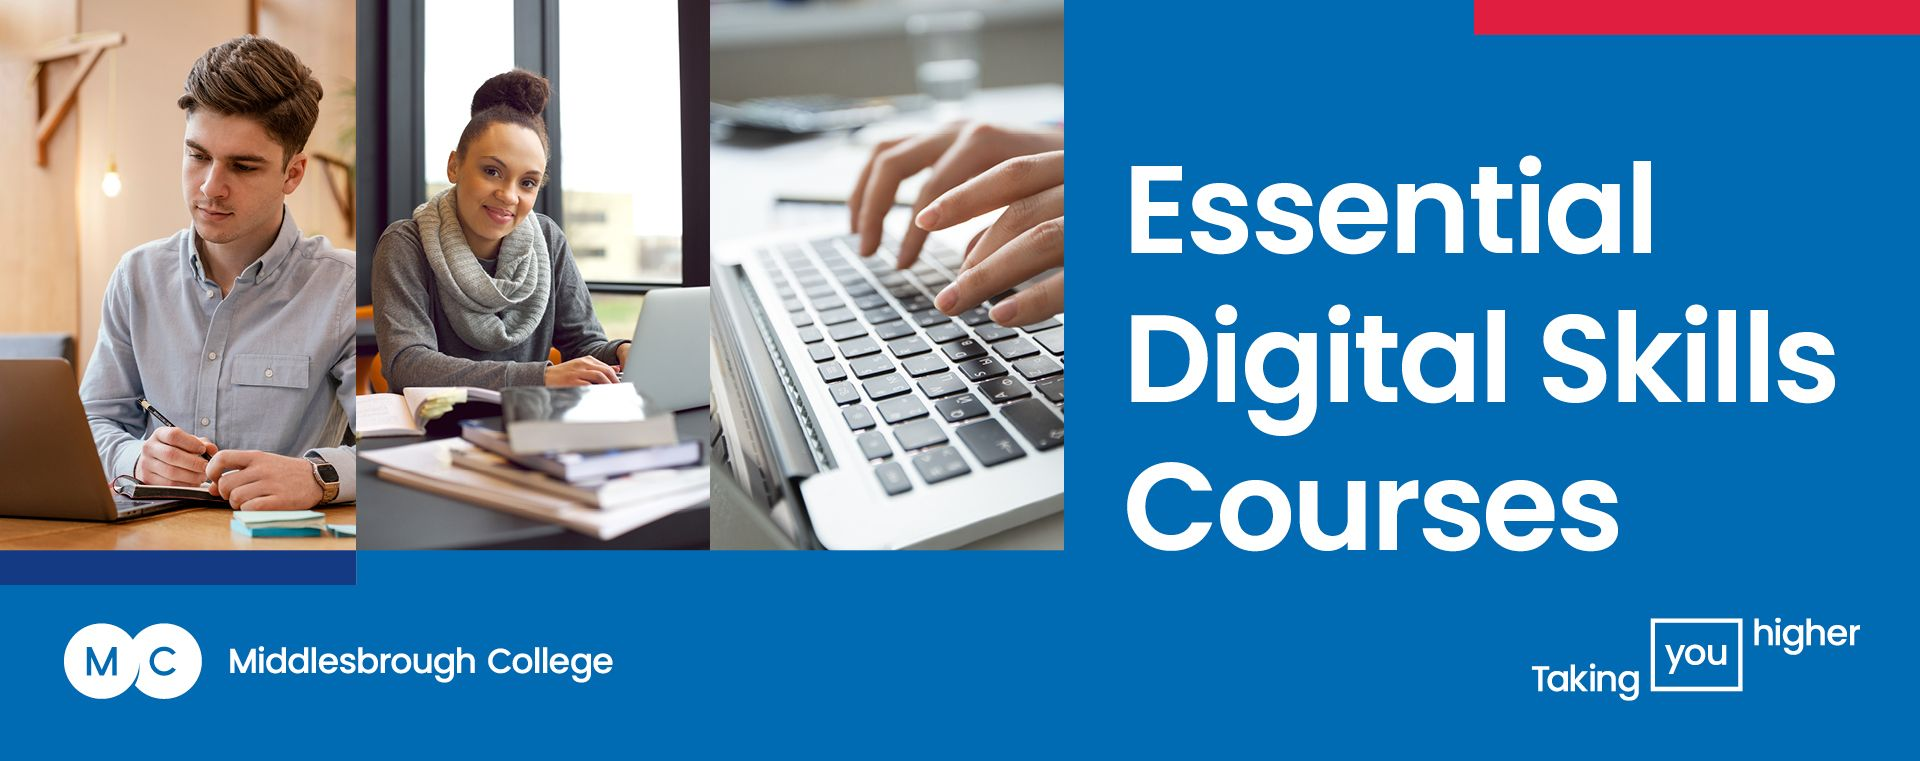 Middlesbrough College Digital Courses